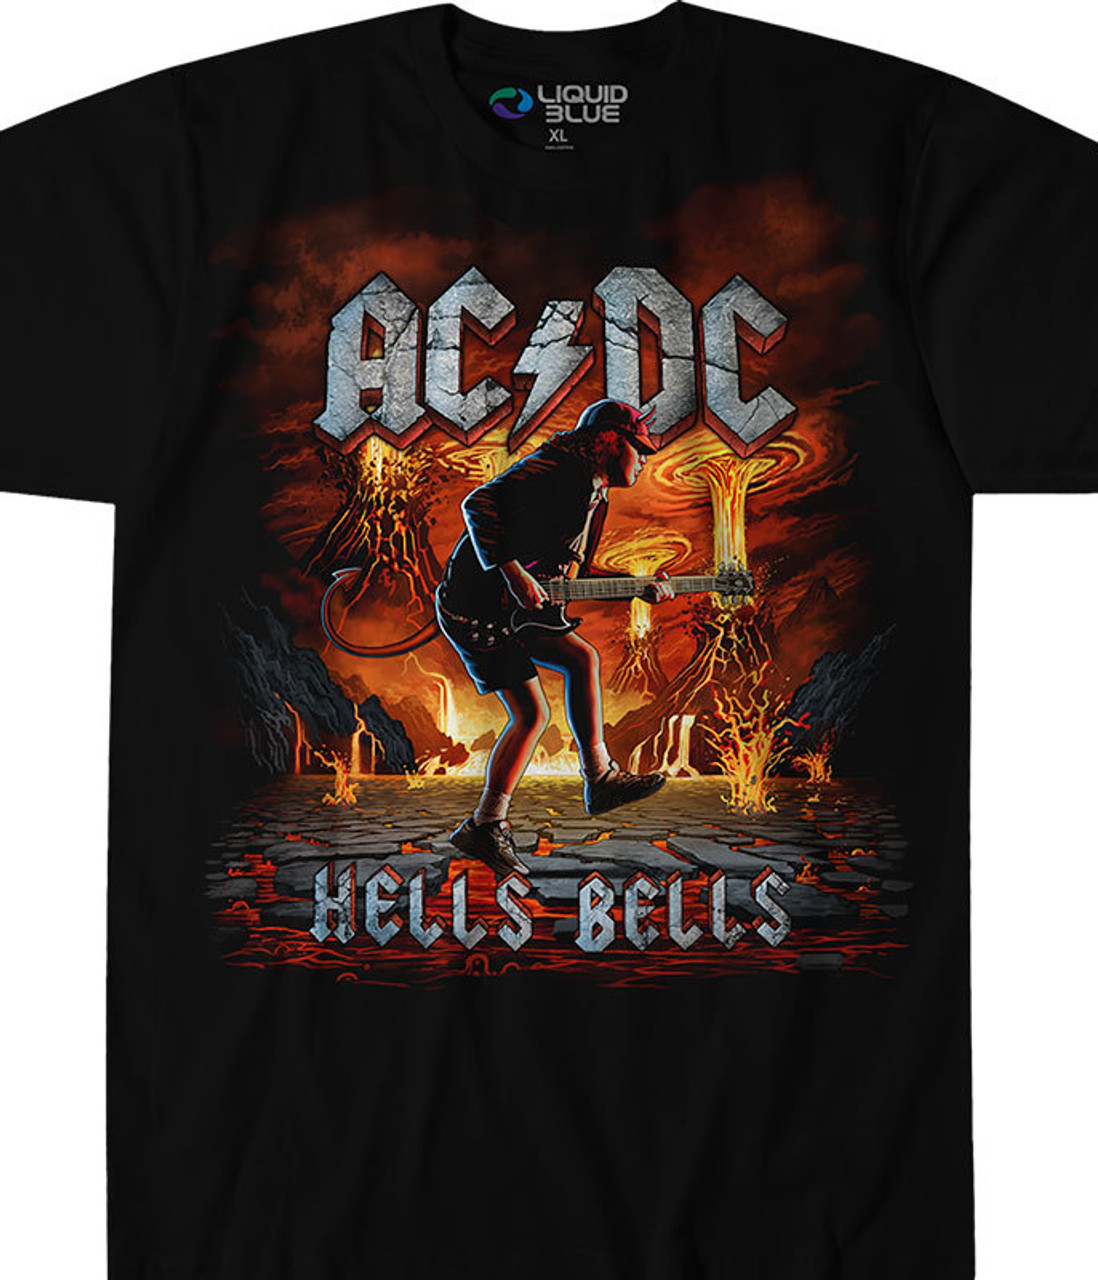 Officially Licensed AC/DC Graphic T-Shirt, Tee, Tie-Dye designed, dyed and printed in the USA by Liquid Blue. Enjoy another stunning piece of artwork from Liquid Blue with this AC/DC t-shirt showing another interpretation of the band's hit song Hells Bells.